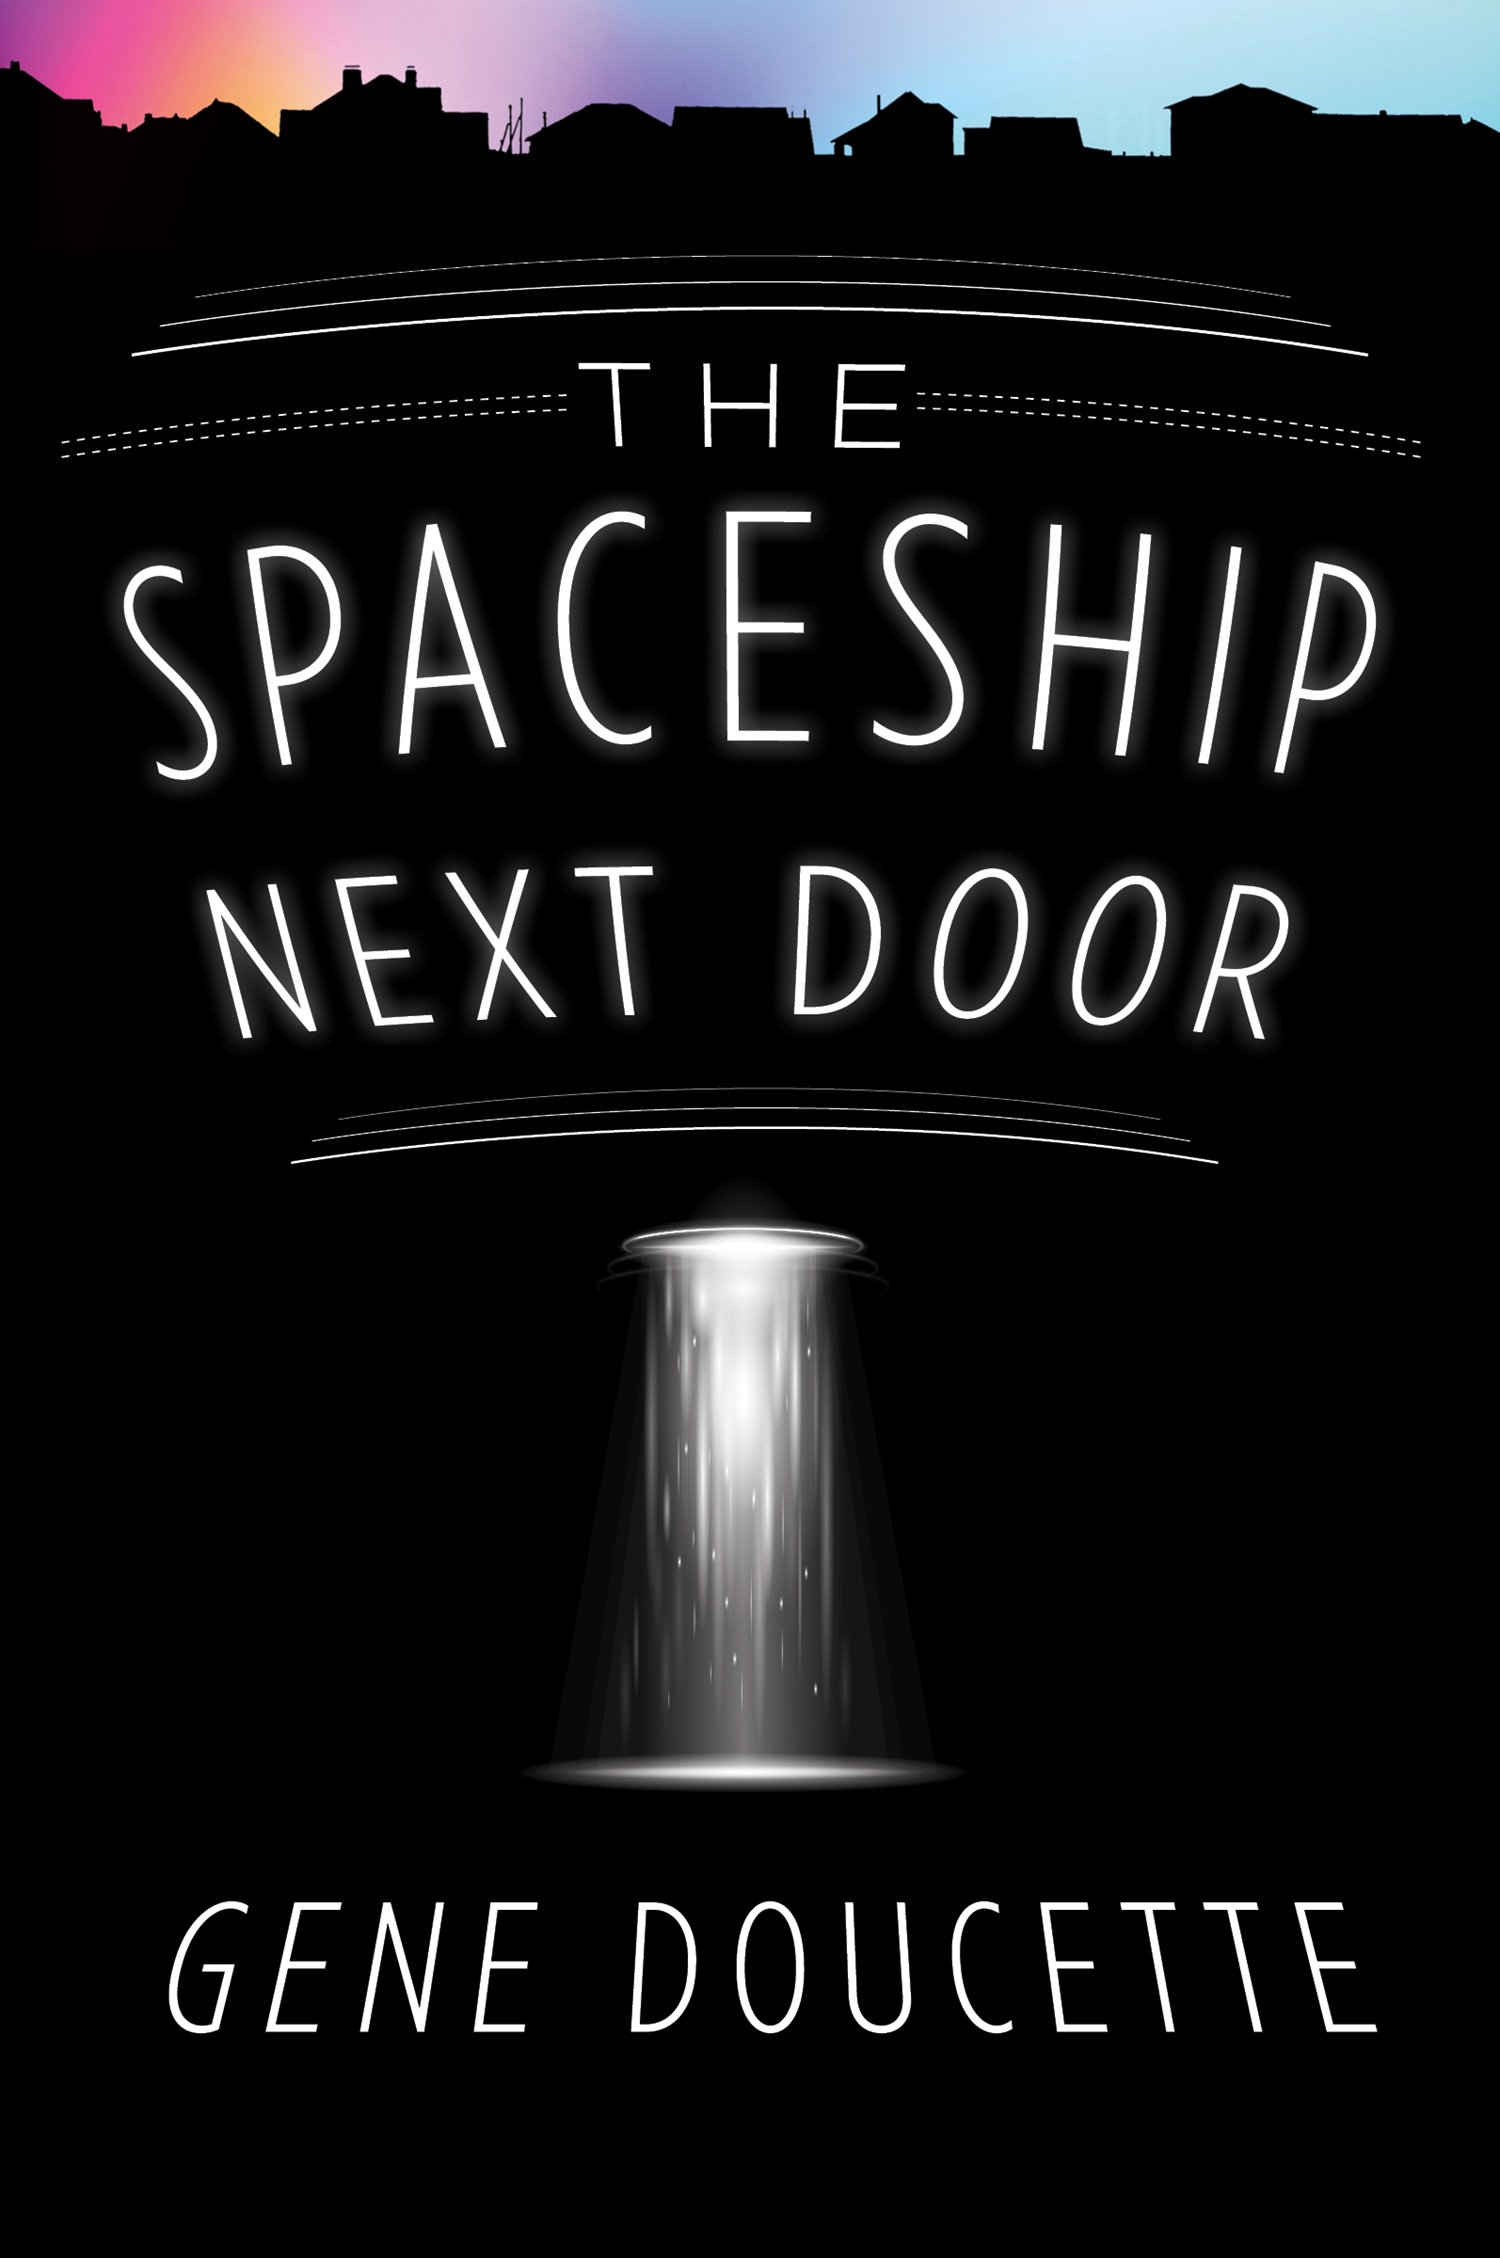 Amazon.com: The Spaceship Next Door (9781328567468): Doucette ...